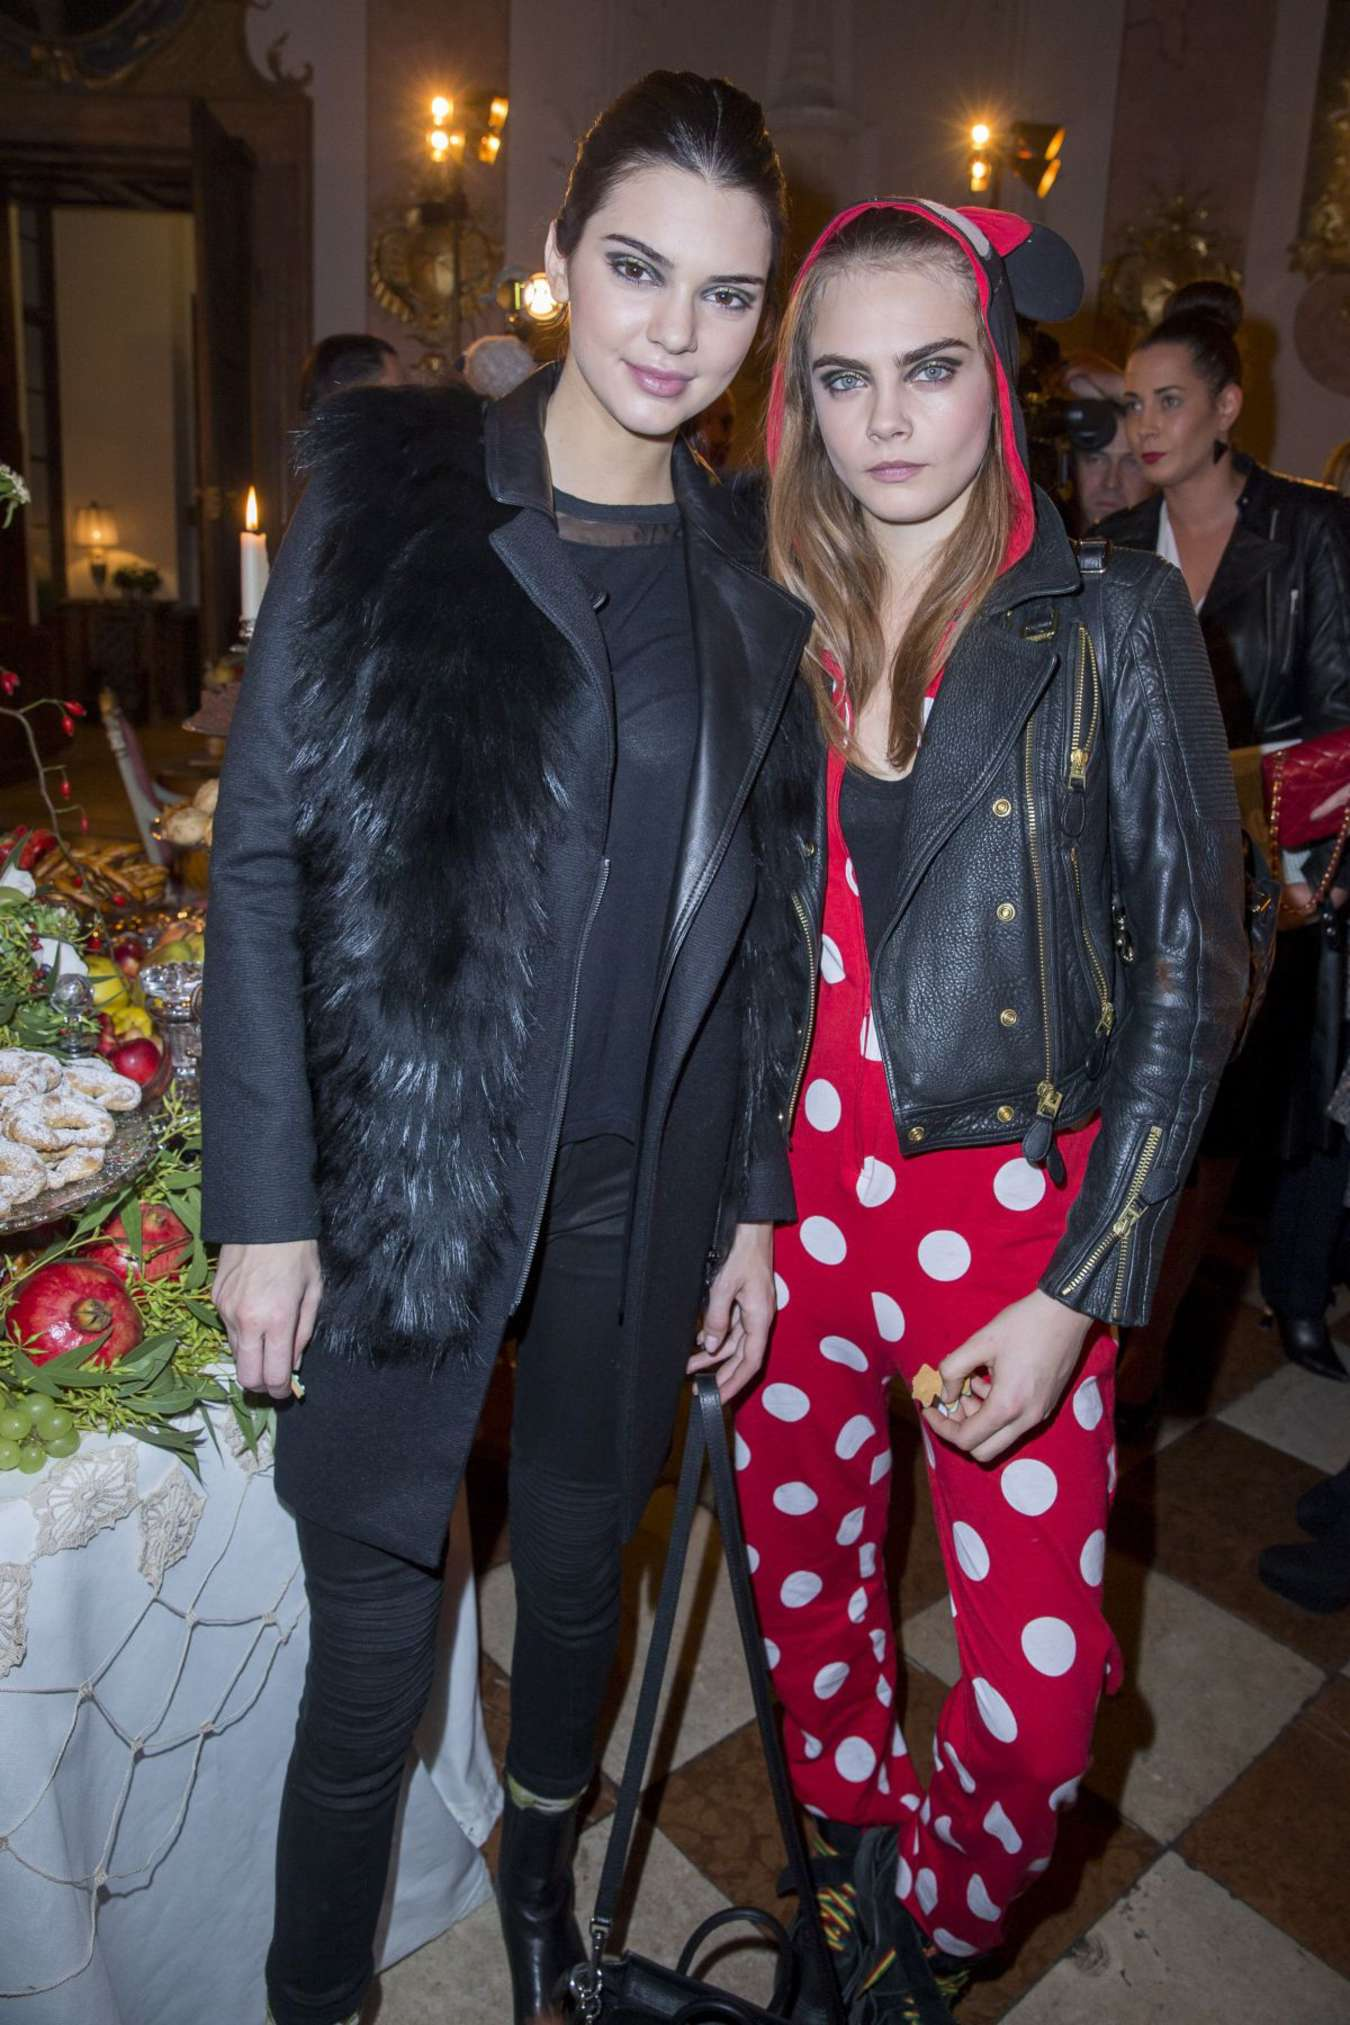 Cara Delevingne & Kendall Jenner - Chanel Metiers d'Art Collection 2014/15 Paris-Salzburg in Austria